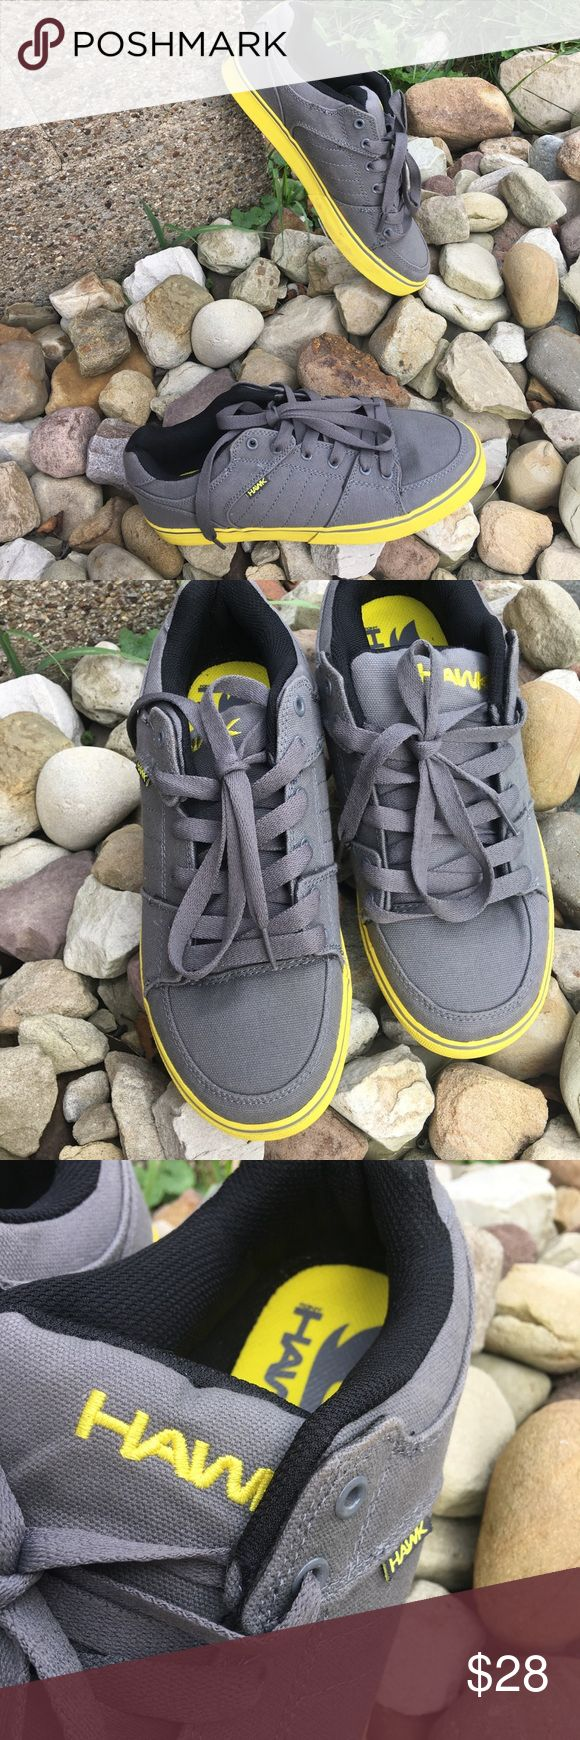 Tony Hawk Gray Yellow Skater Shoes Loafers Flats Tony Hawk Original Skate Shoes. Size 7.5 Men's. Good condition! Comfort fit. Gray with yellow accents. Lace up flat Loafers. Originally $115! Tony Hawk Shoes